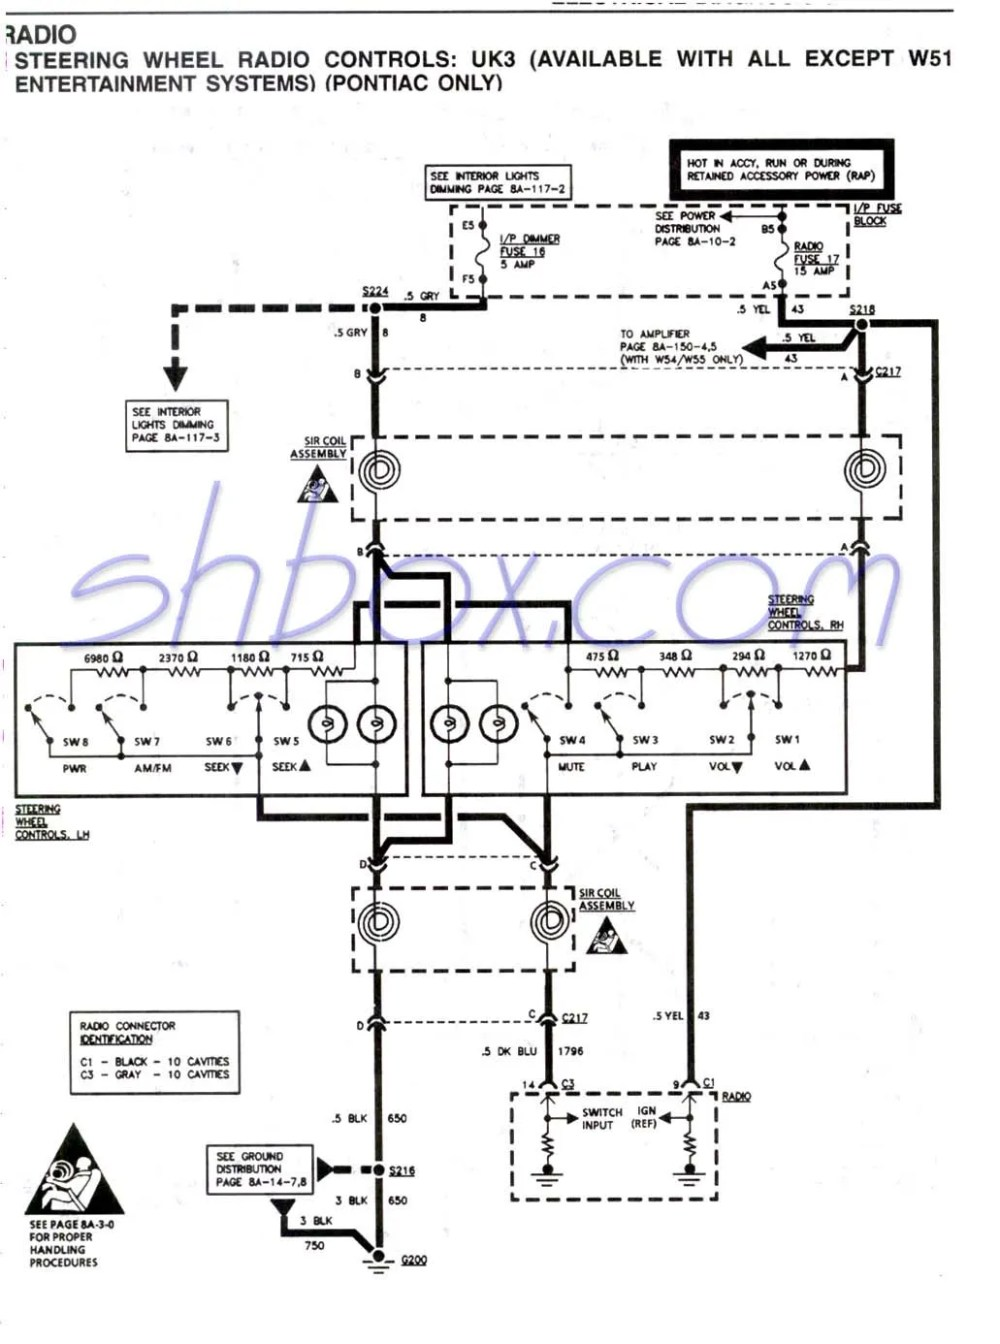 medium resolution of 1996 chevy k3500 7 4 liter wiring steering column wiring diagram 1996 chevy k3500 7 4 liter wiring steering column